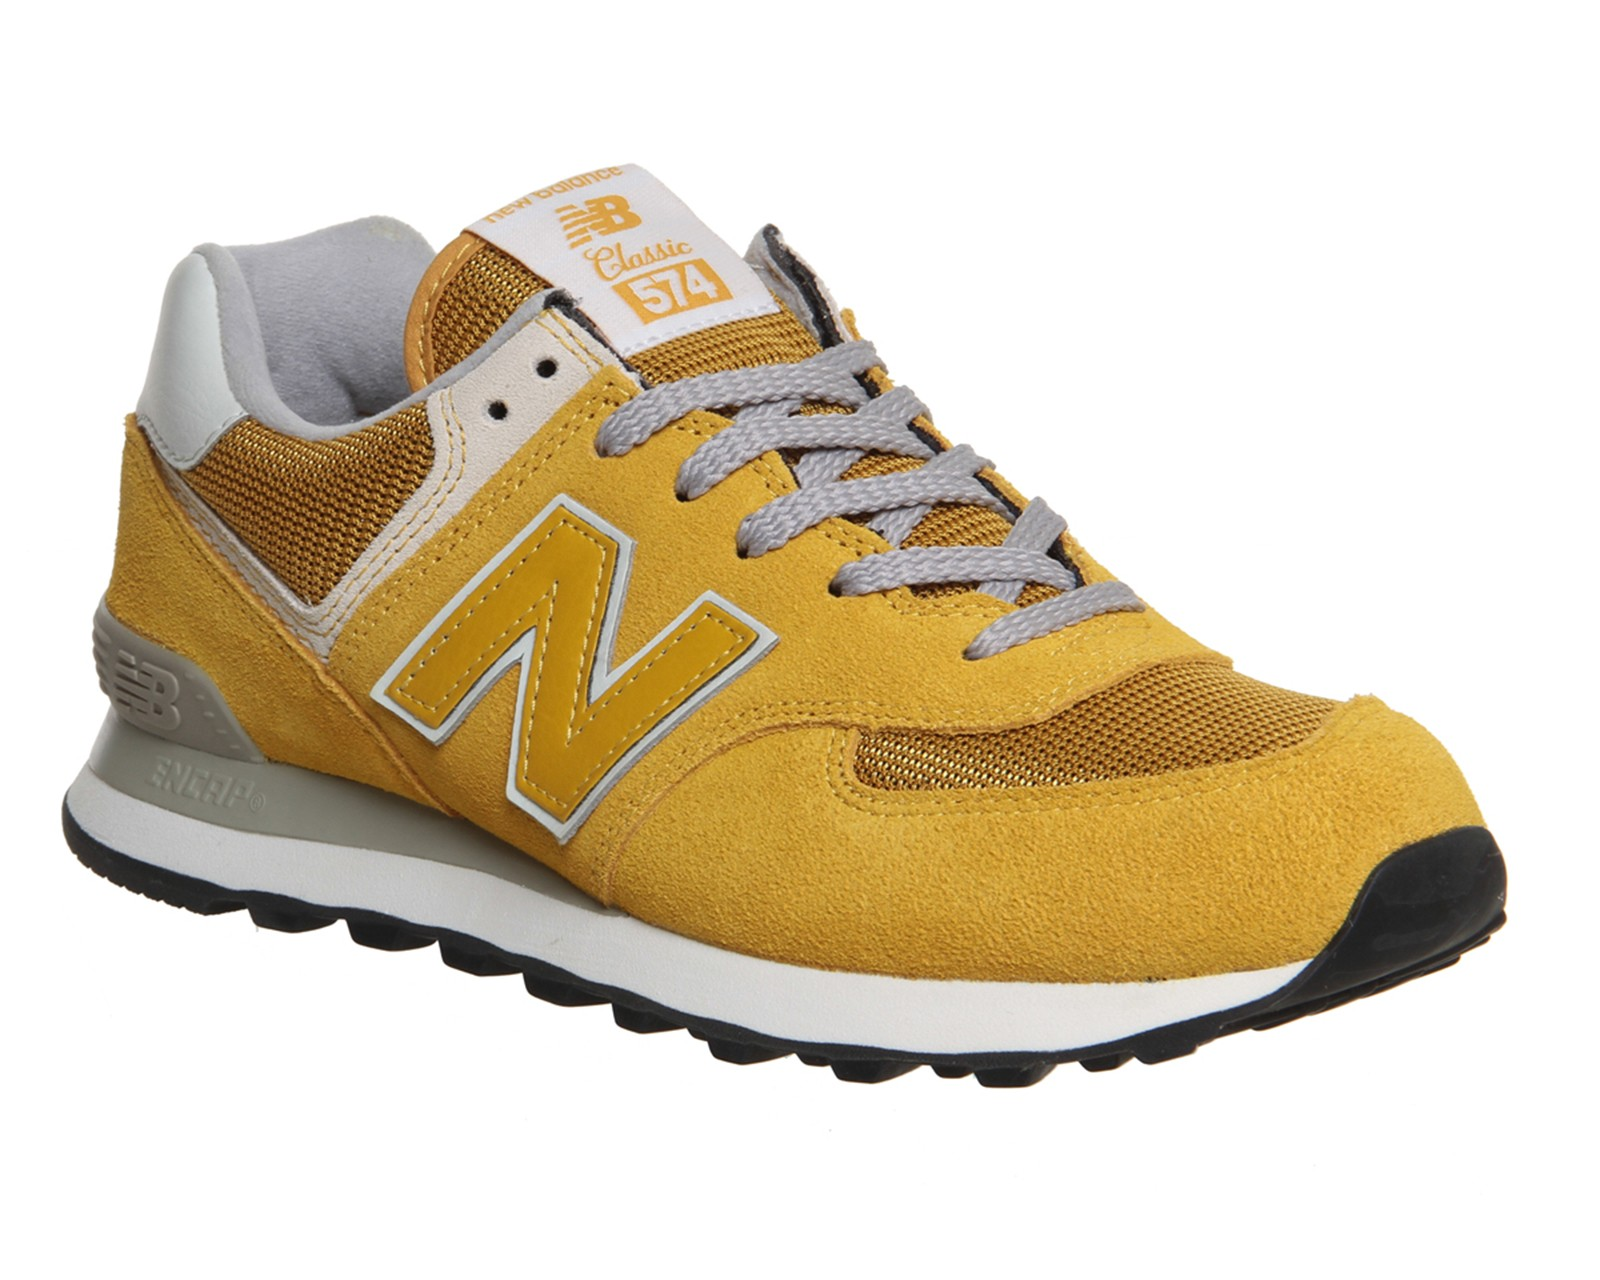 New Balance M574 Daim/Mesh Homme Chaussures Moutarde/Jaune